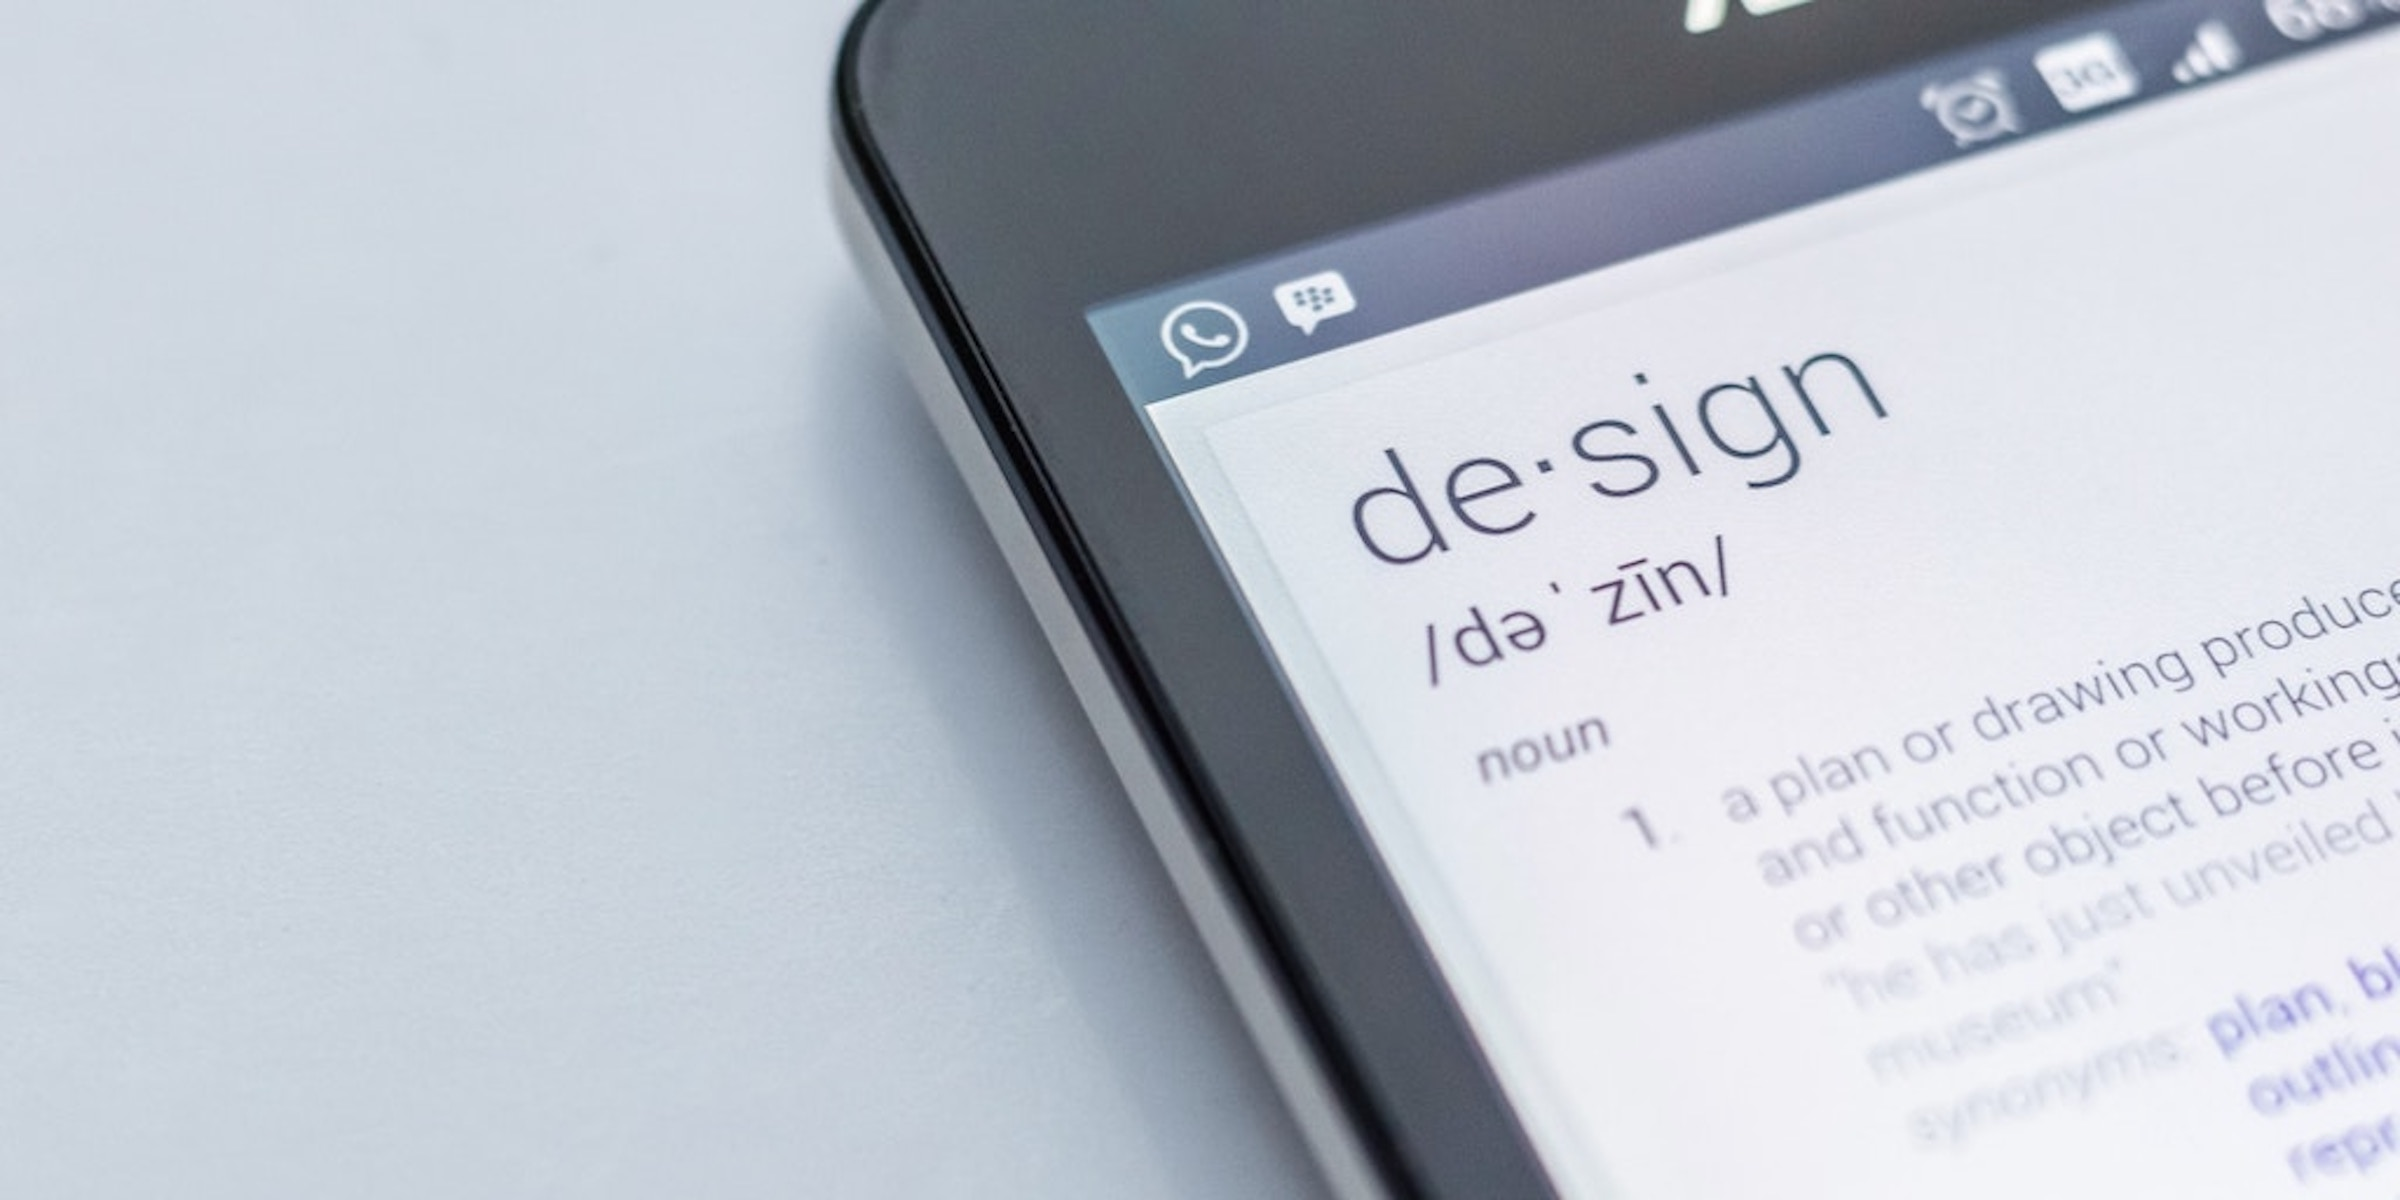 definition of design is displayed on a mobile device screen